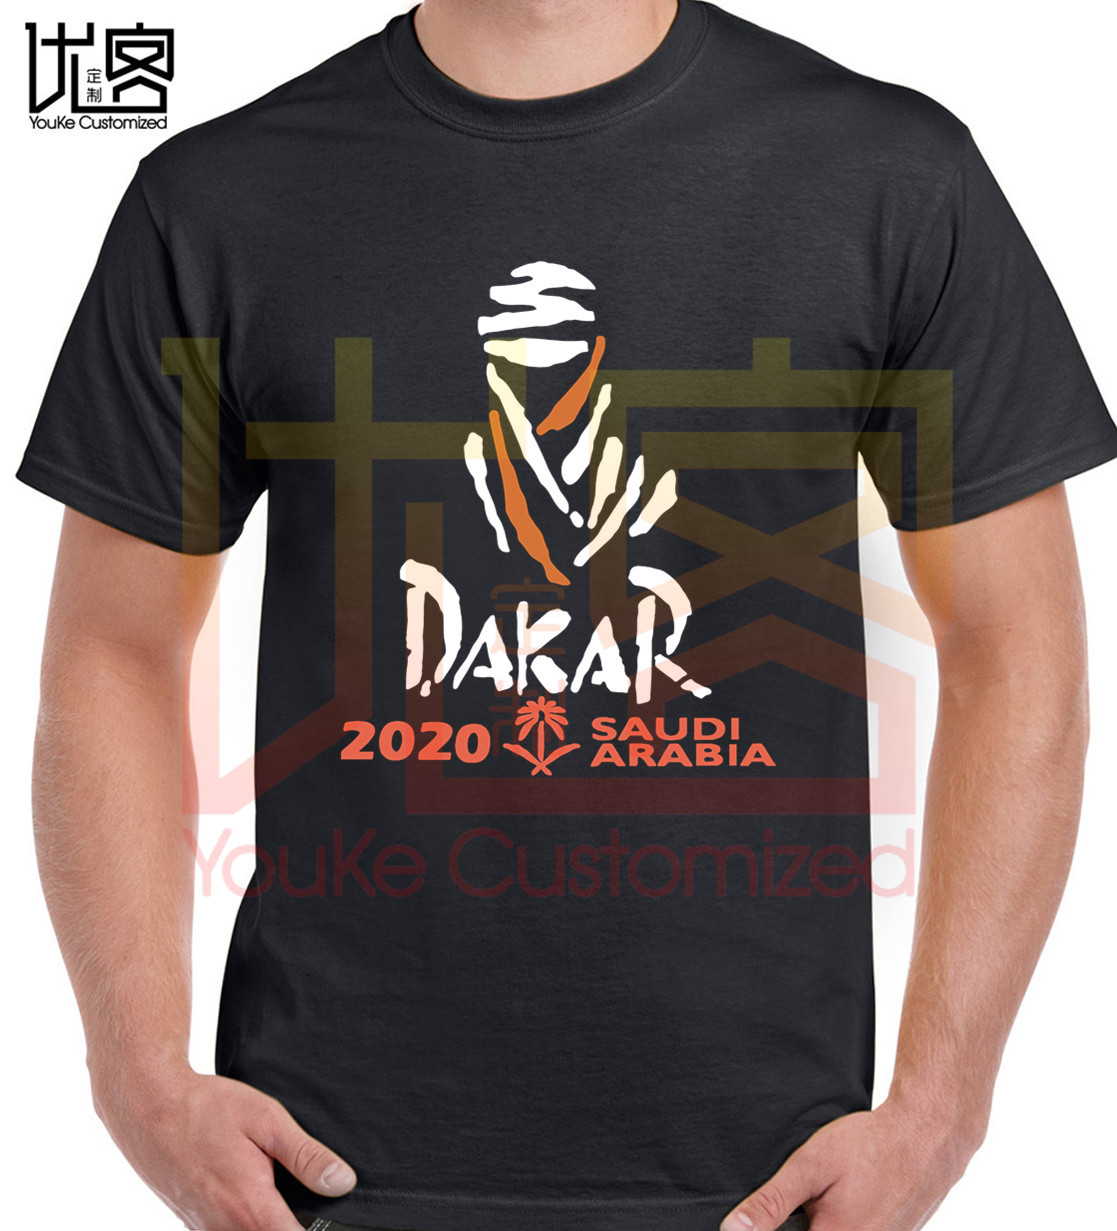 Dakar 2020 Rally Racing Saudi Logo T Shirt Men's Women's Fashion O-neck Cotton Short Sleeves Tops Tee Printed Unisex T-shirt